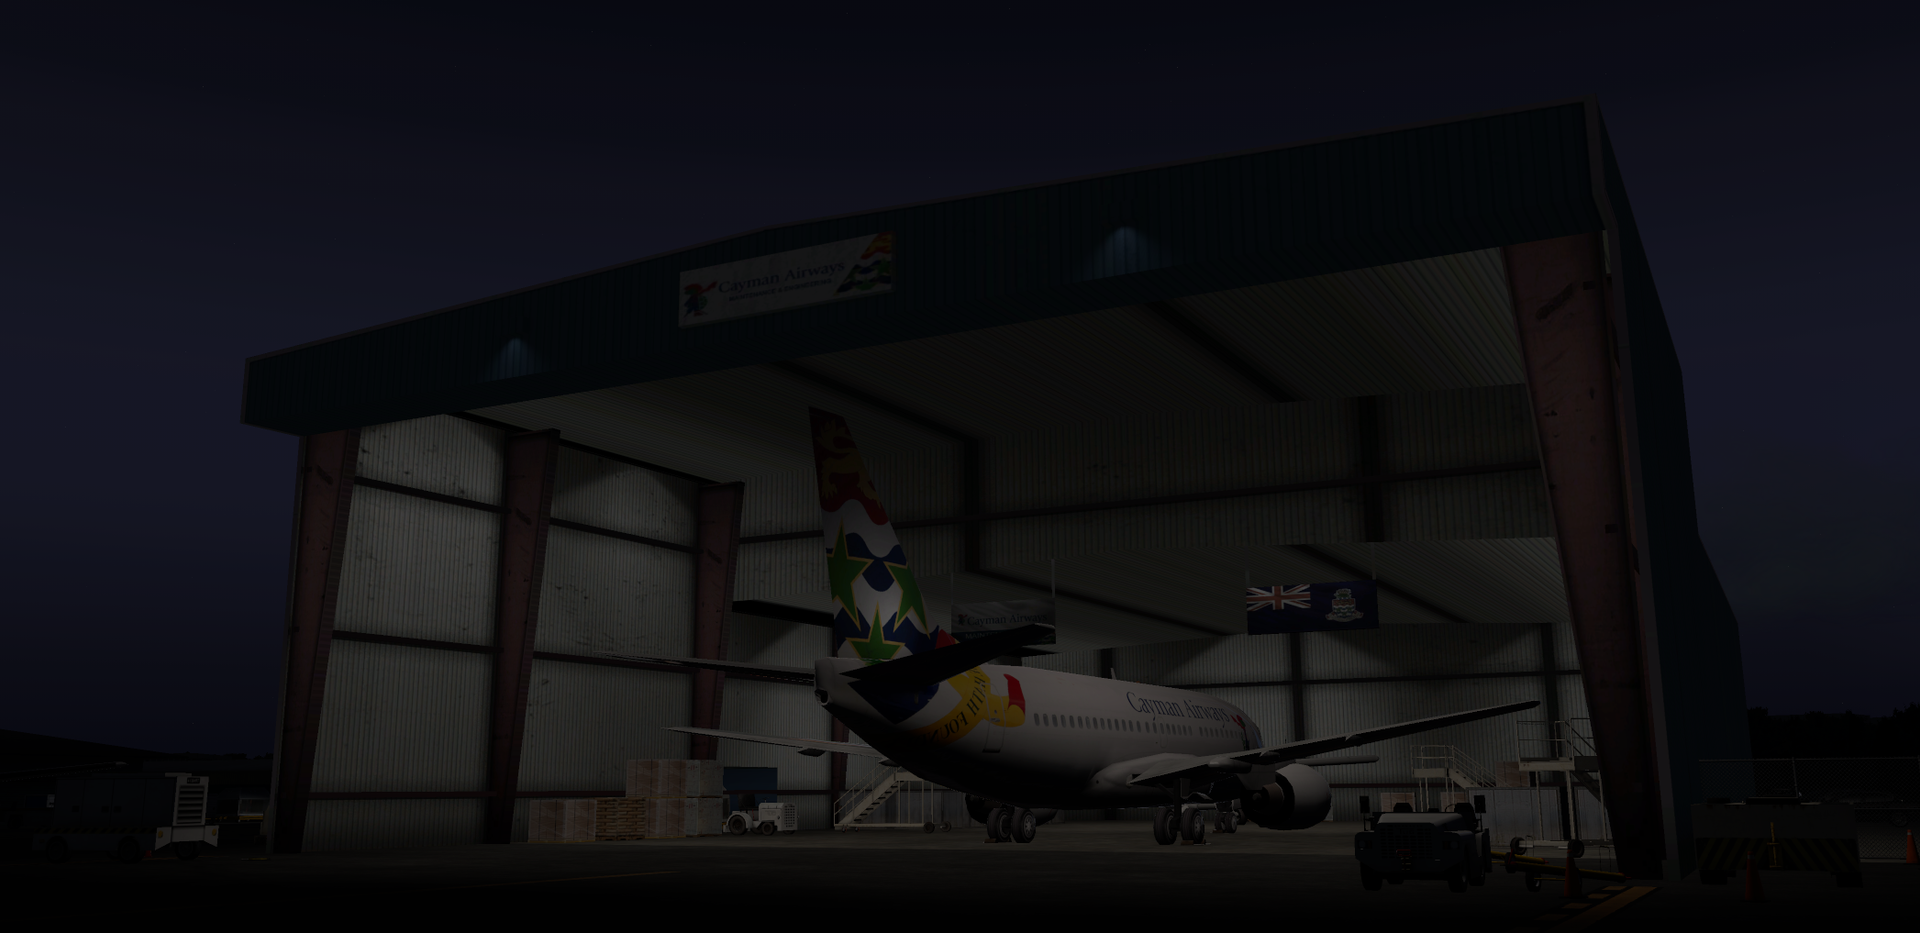 b738_70.png